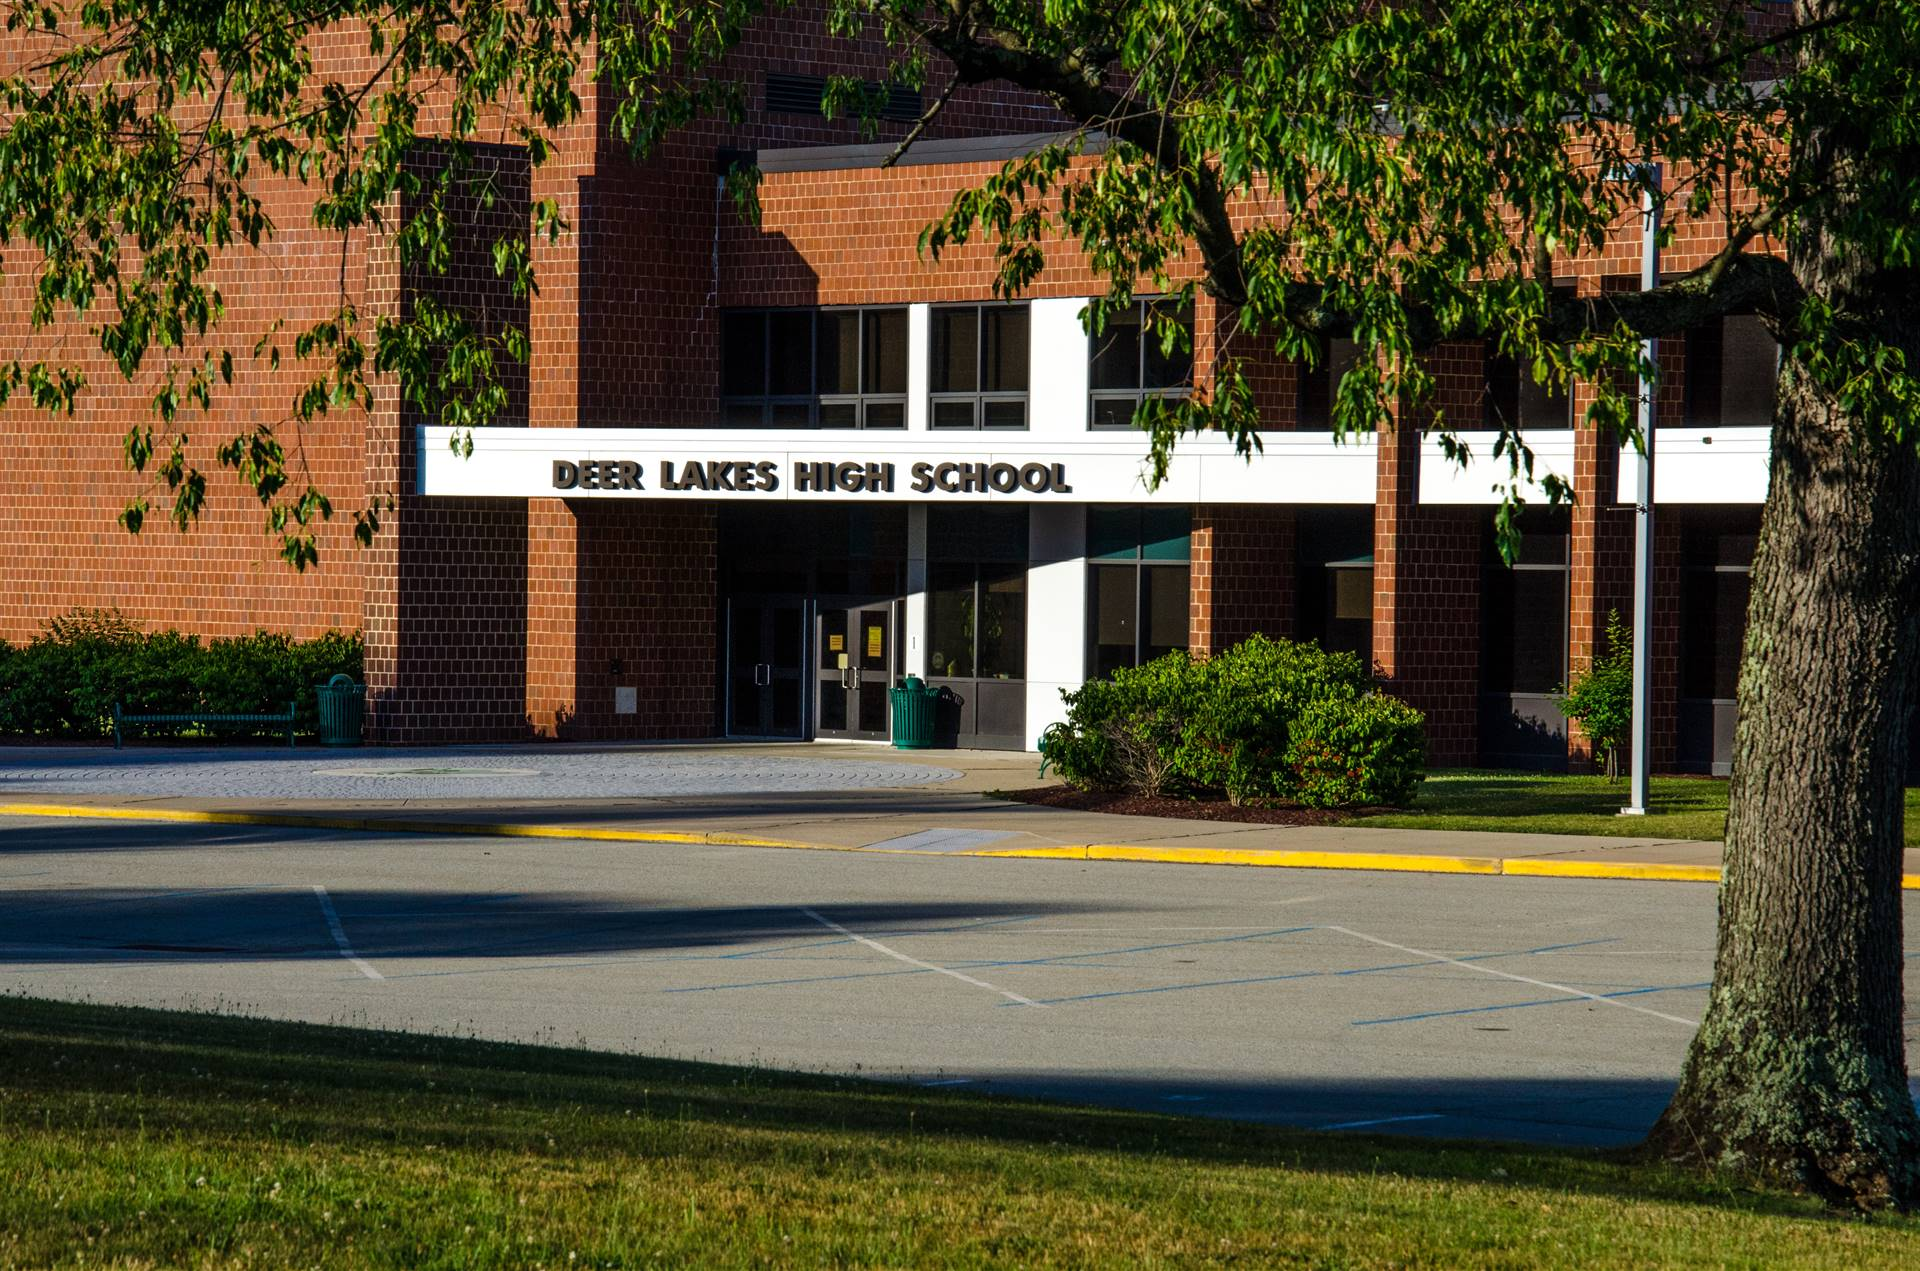 Deer Lakes High School